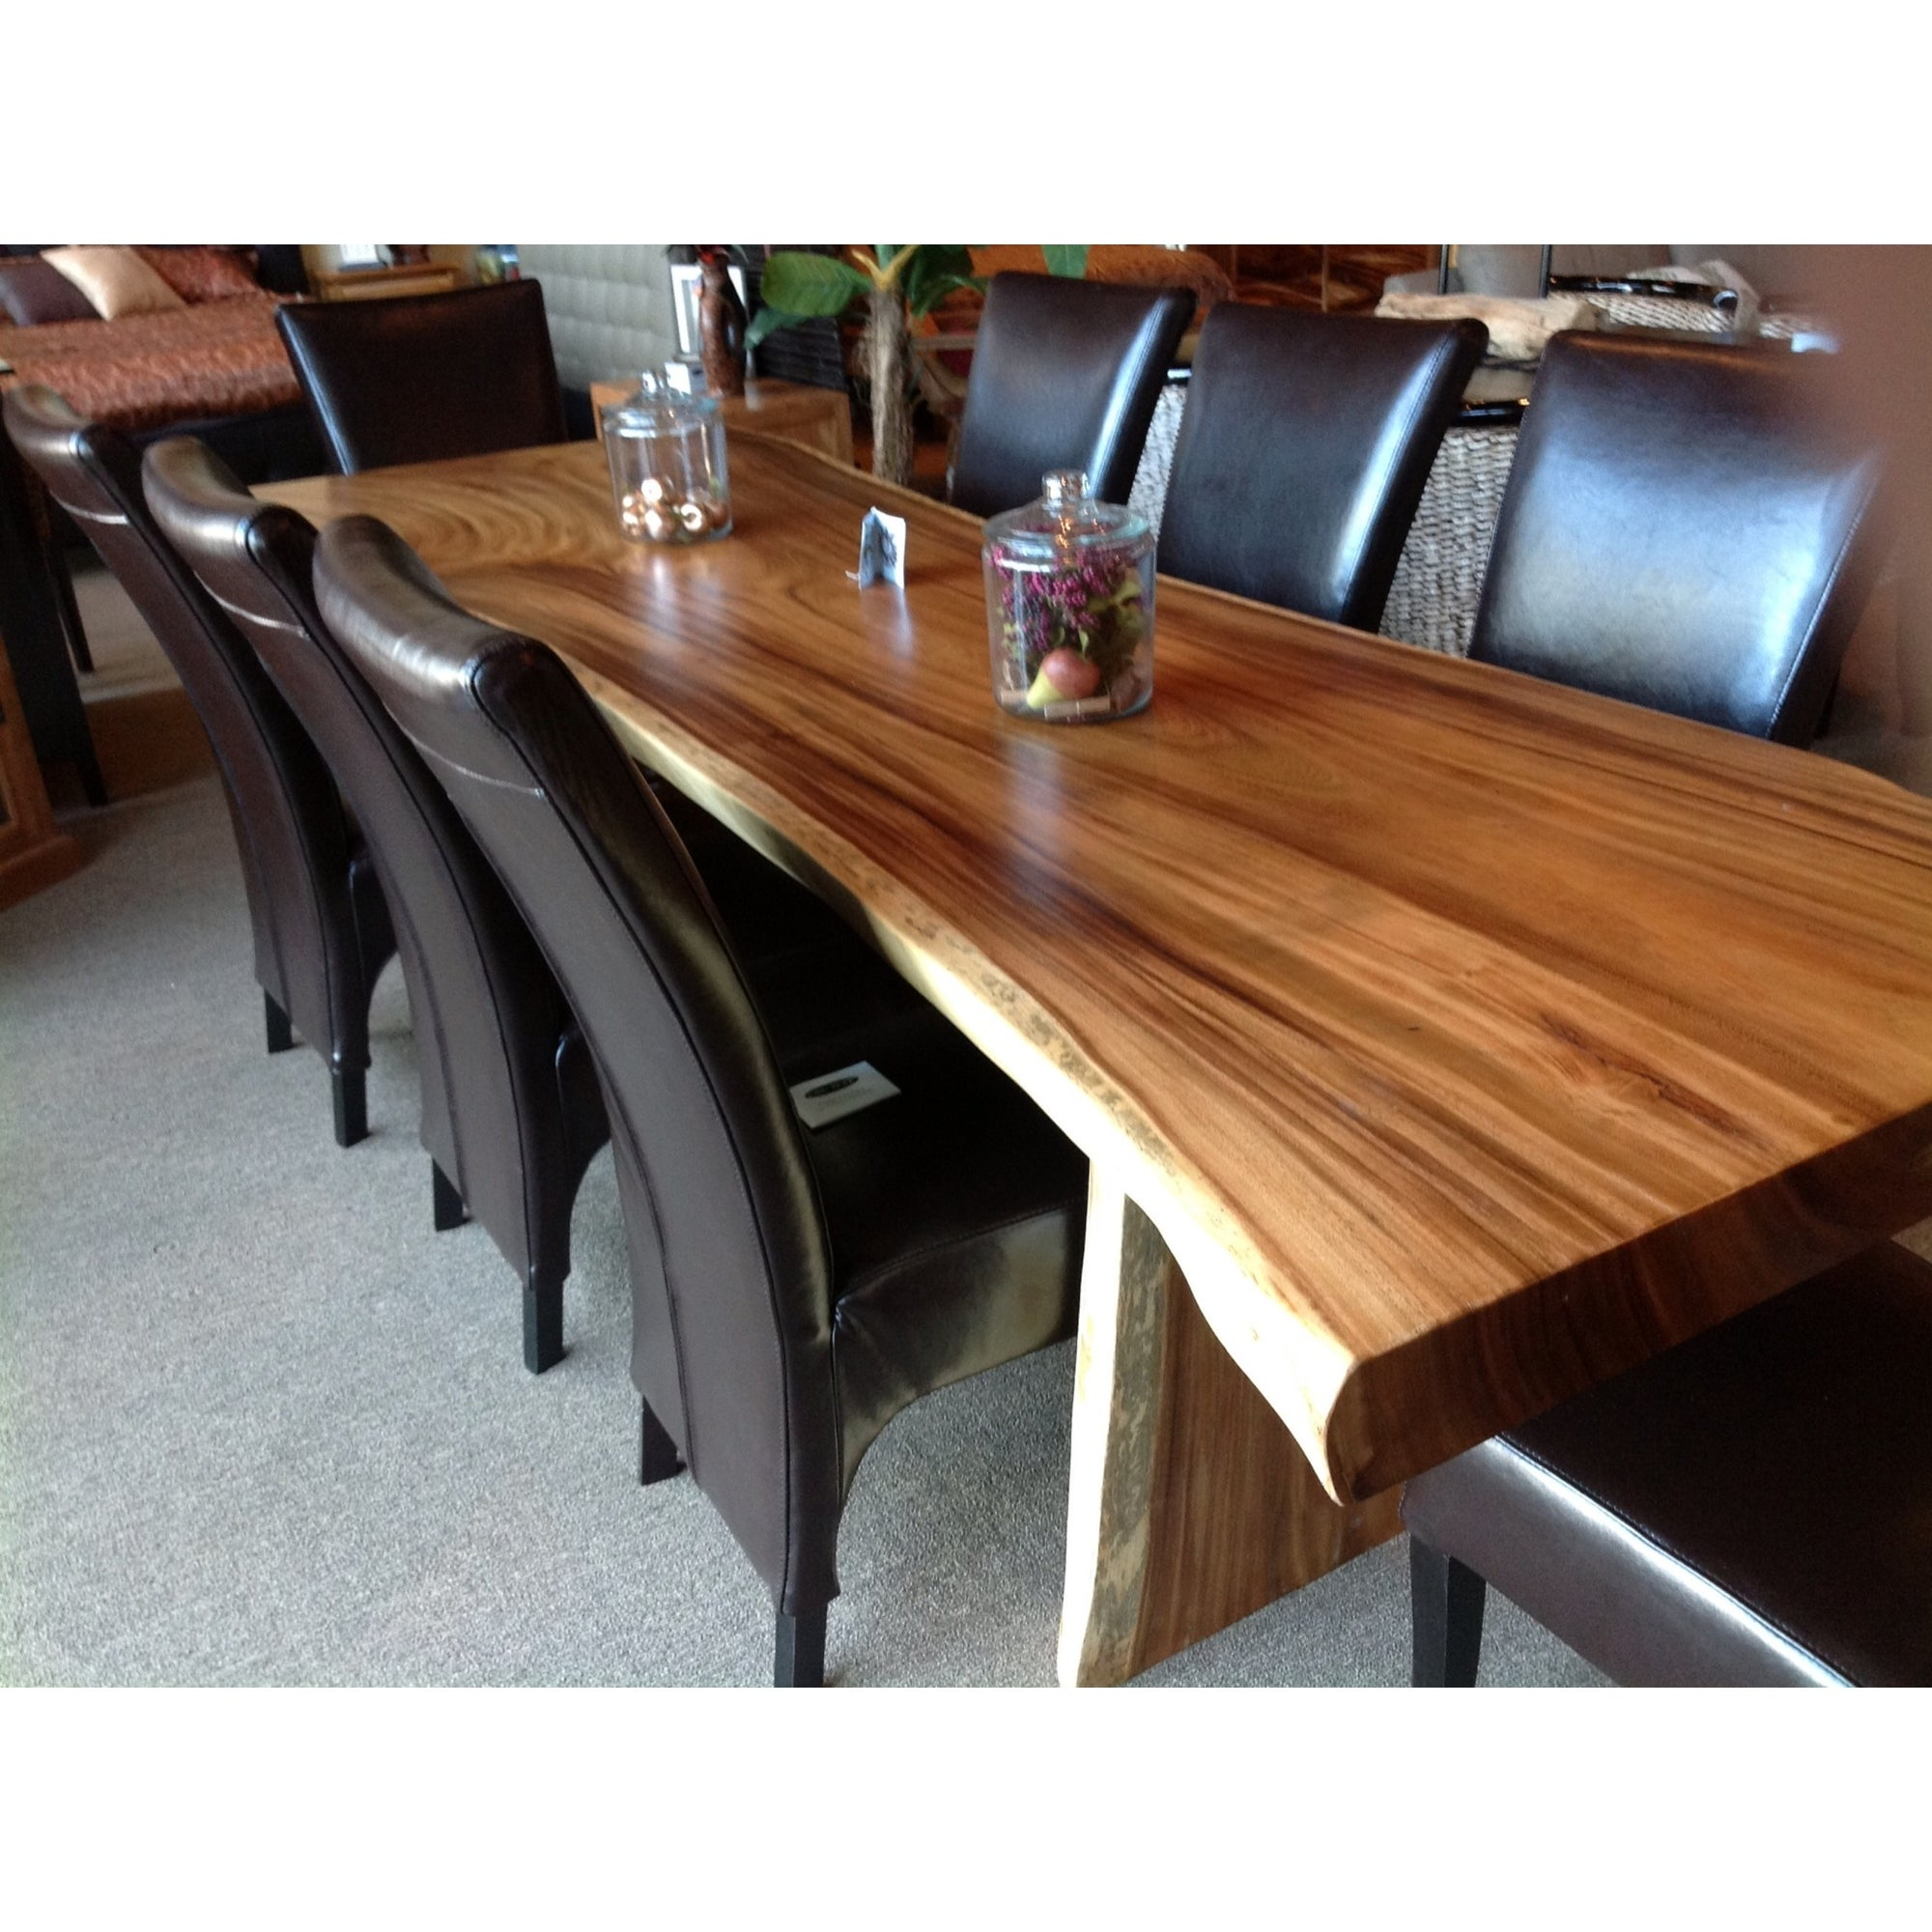 Chic Teak Suar Live Edge Unique Slab Dining Table 118 Long Overstock 31872121